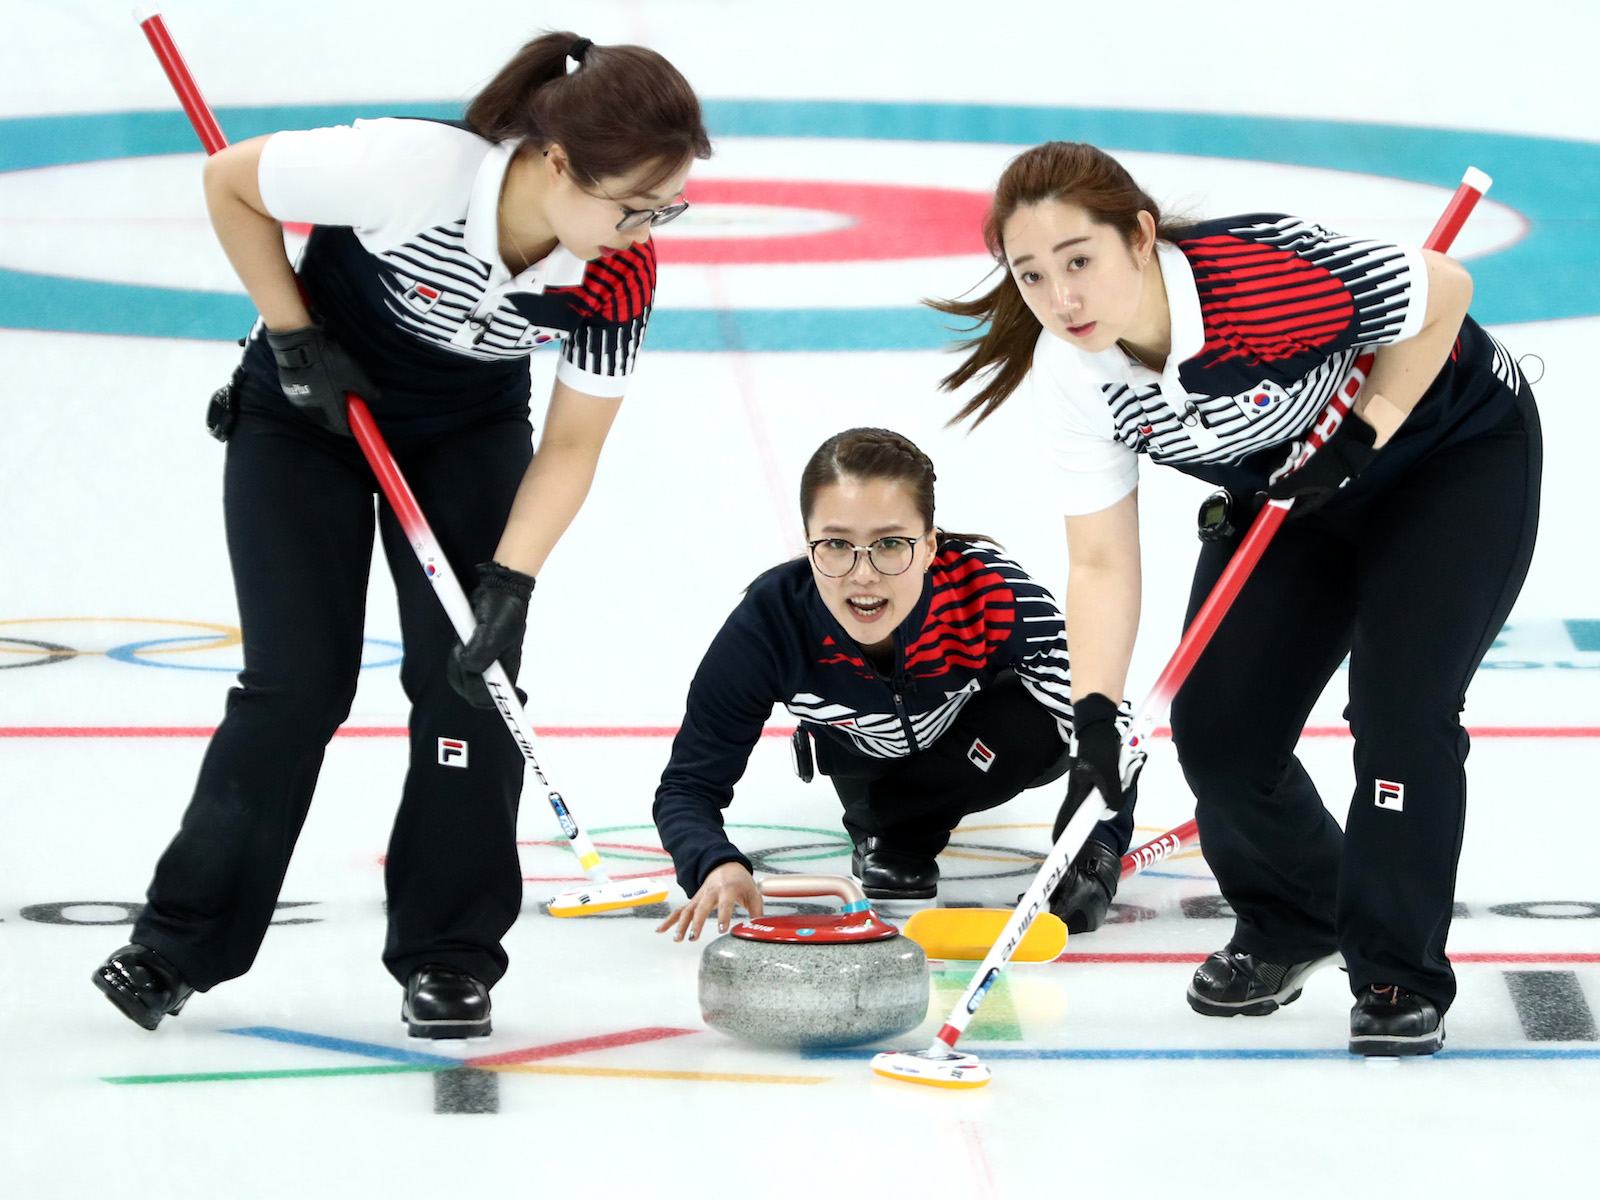 US curling team gets stonewalled by Delta despite gold medal